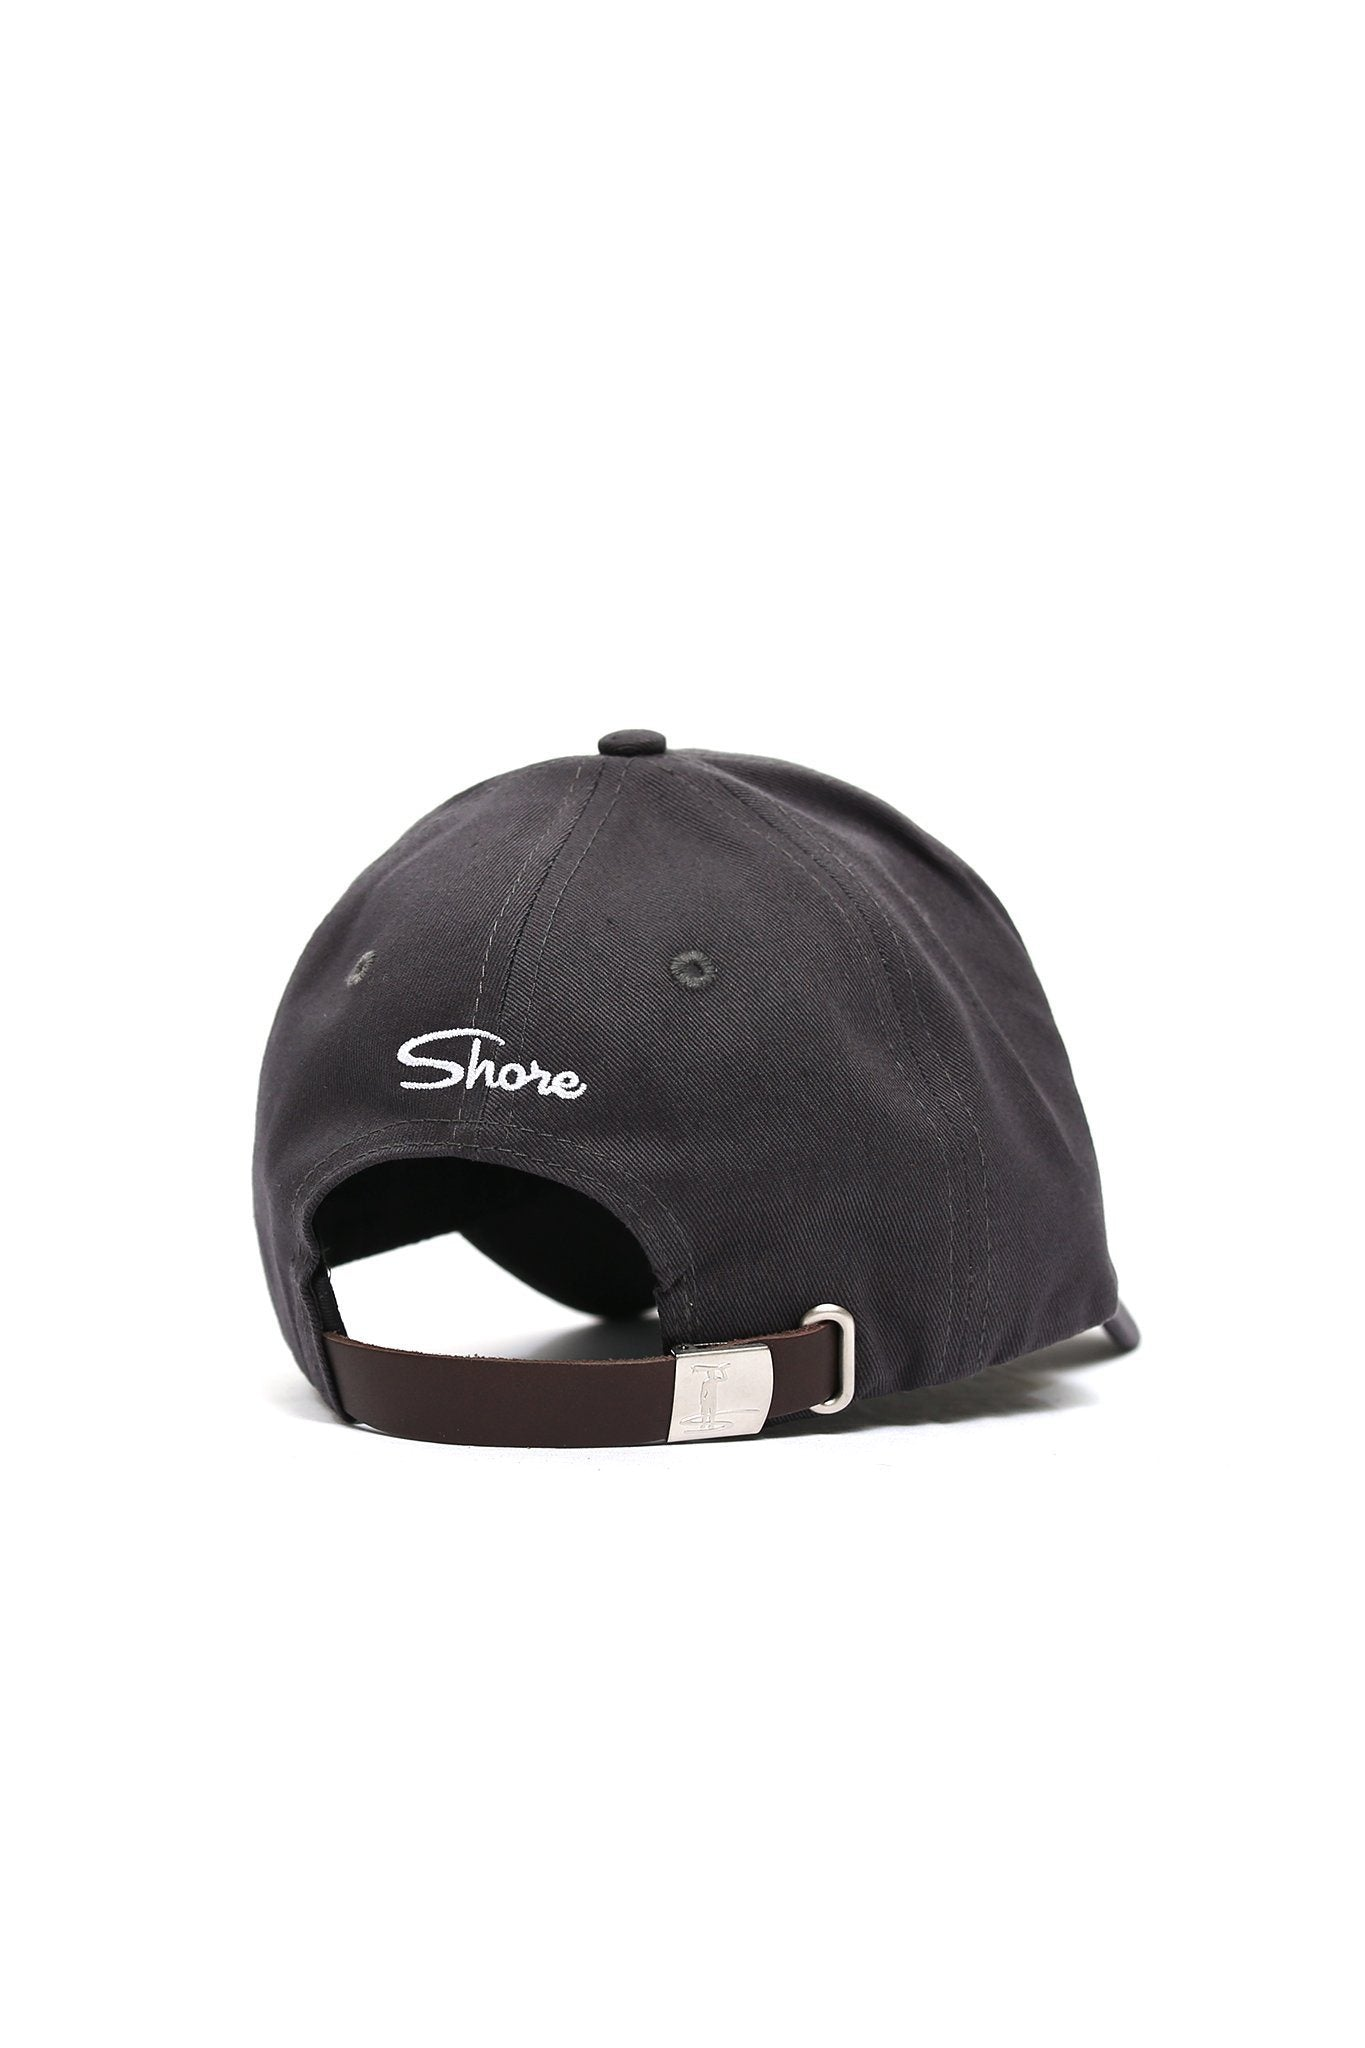 Born By Water Sunset Cap - Charcoal - Shore